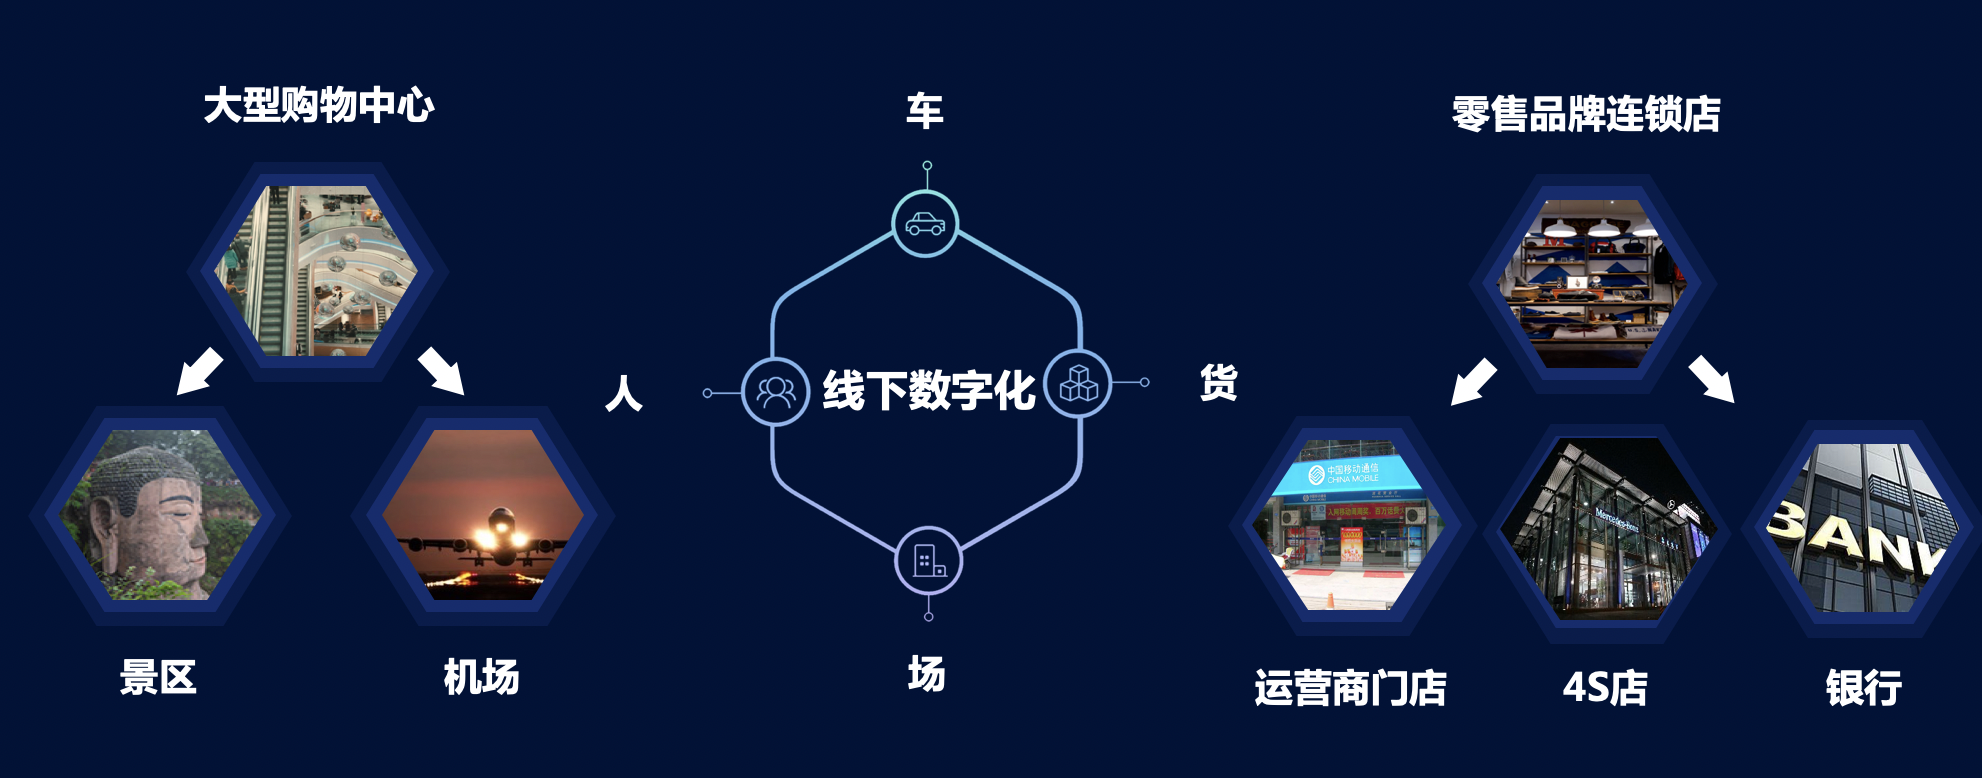 China's AI Comprehensive Solution Provider Aibee Raised  Million in a Series A1 Round Funding by Clear Vue Partners and SPC